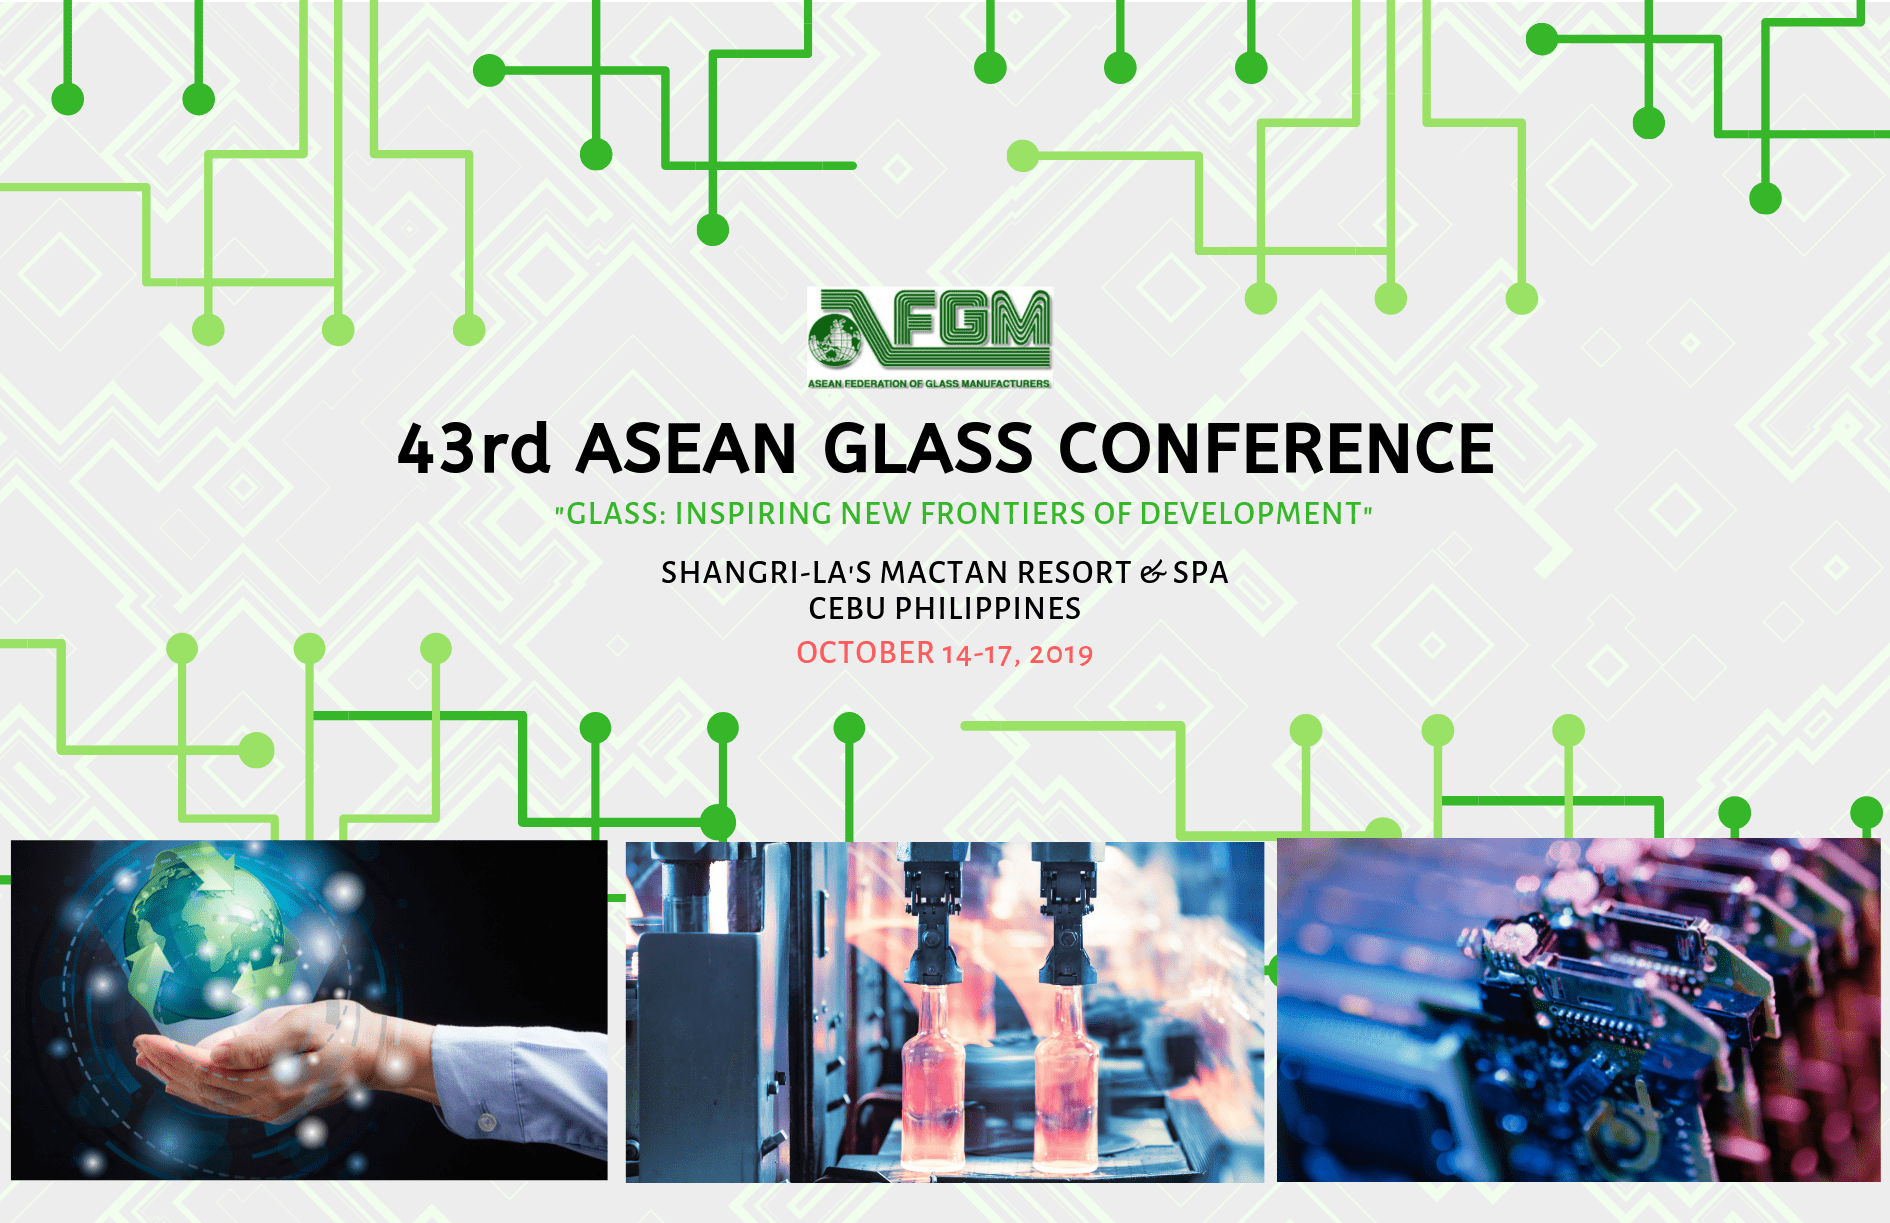 43rd ASEAN GLASS CONFERENCE